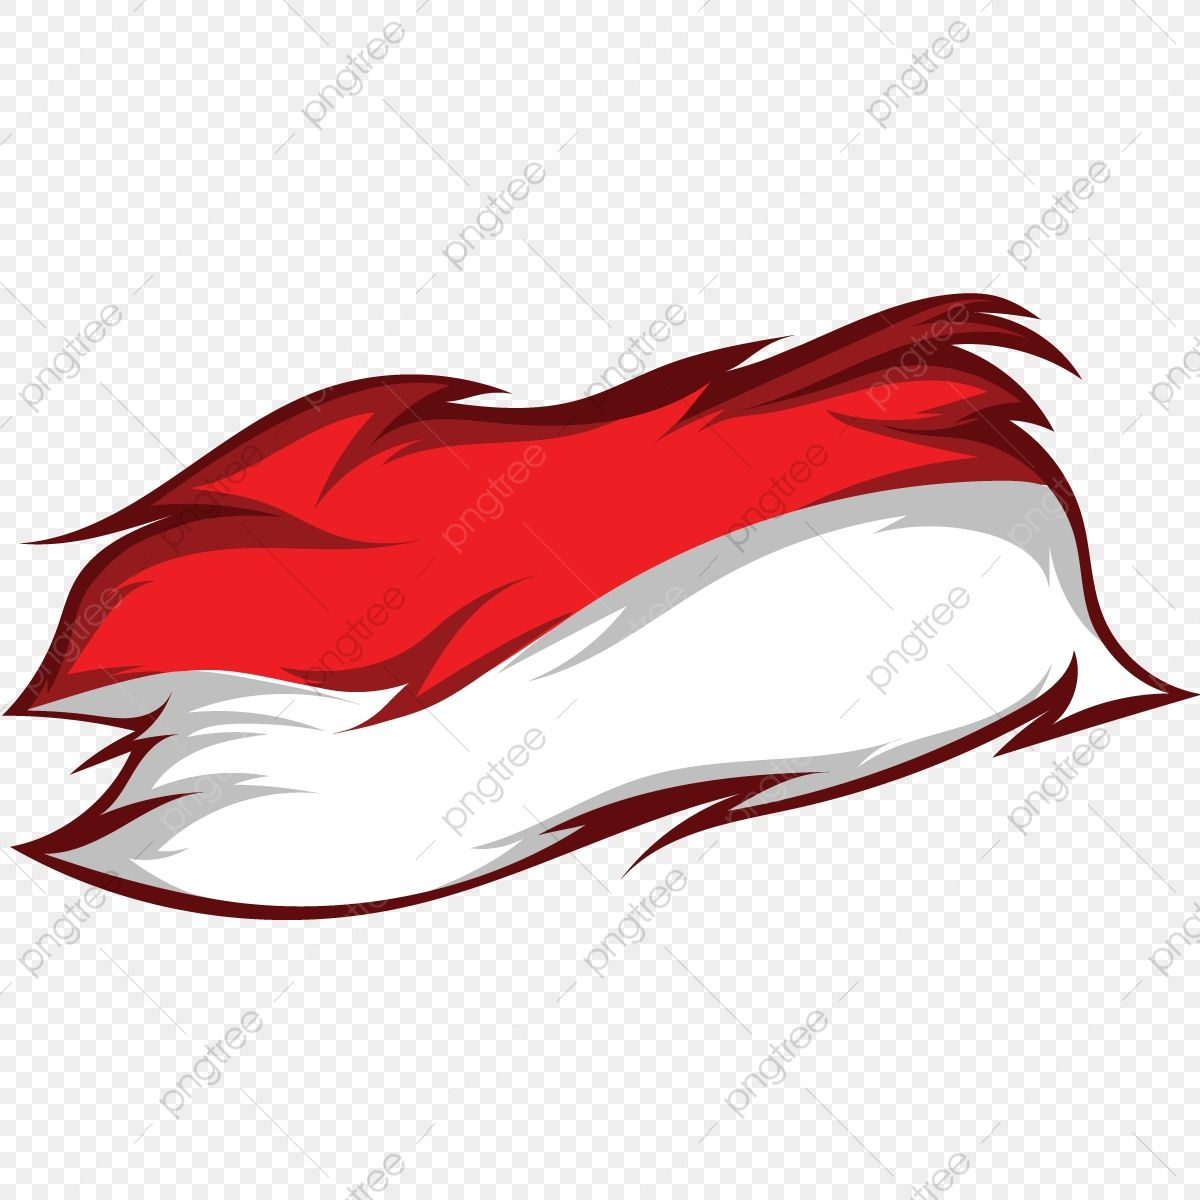 Indonesia Flag With Torn Ornaments On The Edges Bendera Indonesia Unik Png And Vector With Transparent Background For Free Download Indonesia Flag Flag Vector Flag